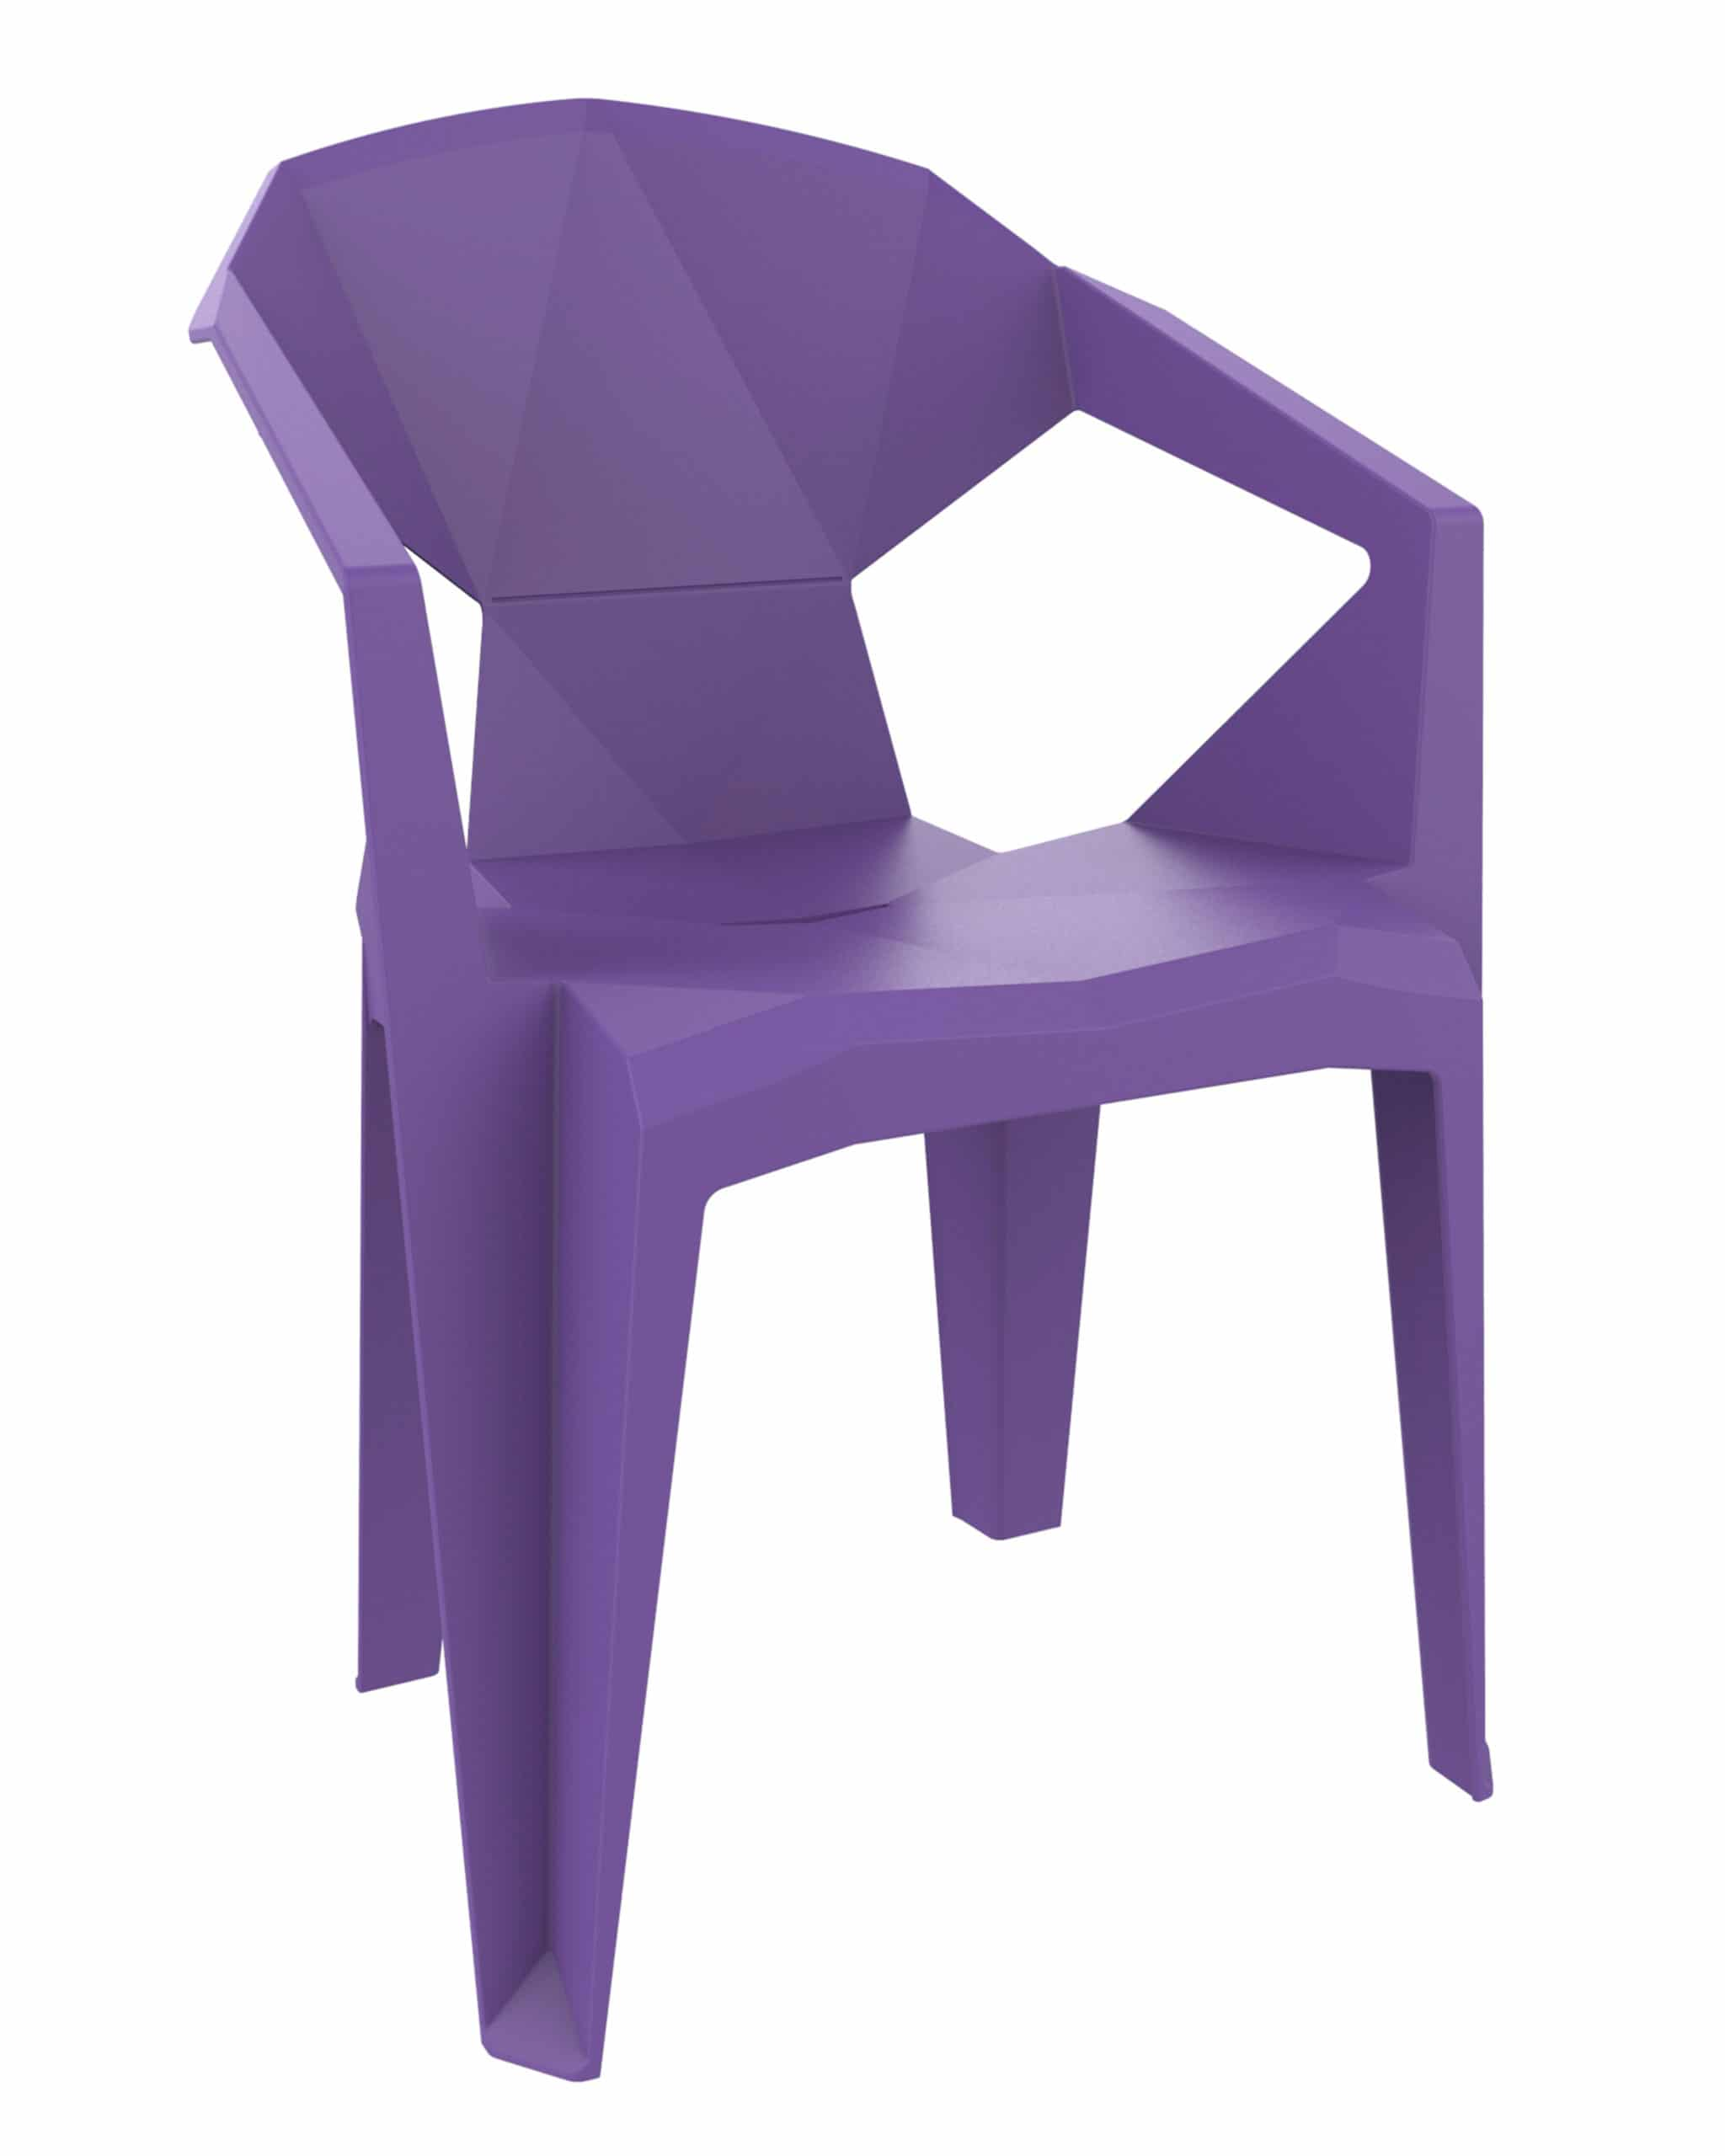 <p>Outdoor Furniture Contemporary Collection – Paco Armchair – Violet.</p> <p> </p> <p>Monoblock armchair designed for indoor and outdoor use available in a variety of colours, stackable, capturing essential features such as lightness, stability, functionality, ergonomics and care for the environment. Adaptable to a variety of hospitality environments</p>